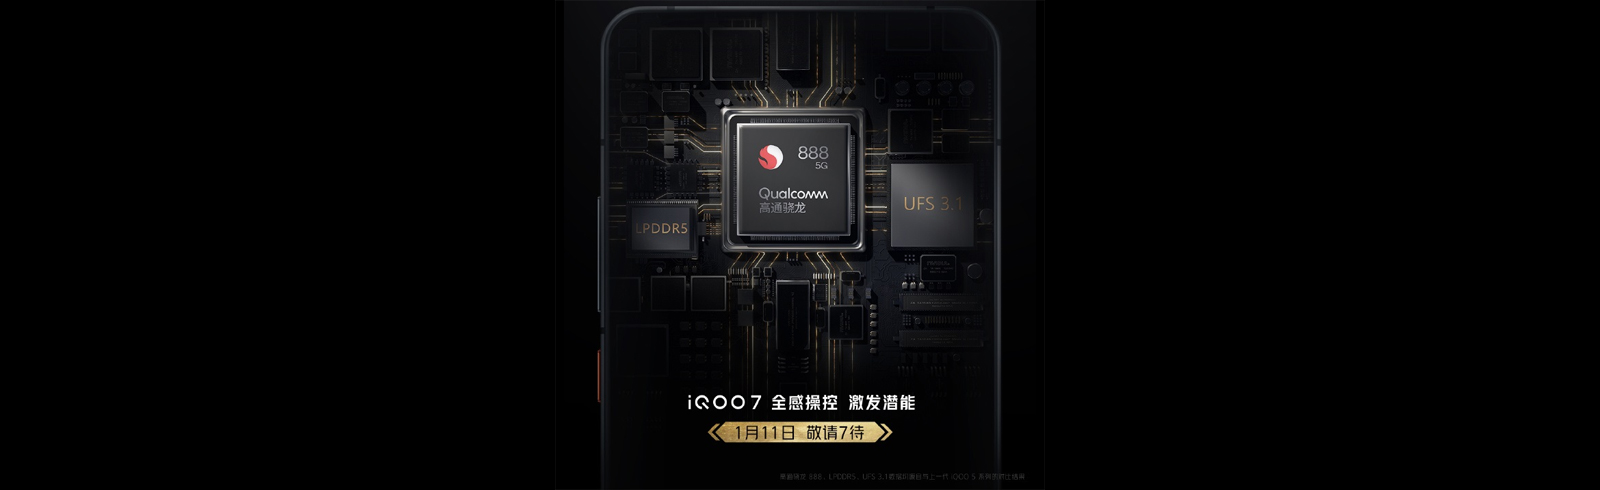 Vivo will unveil the iQOO 7 series on January 11, will pack a Snapdragon 888 chipset